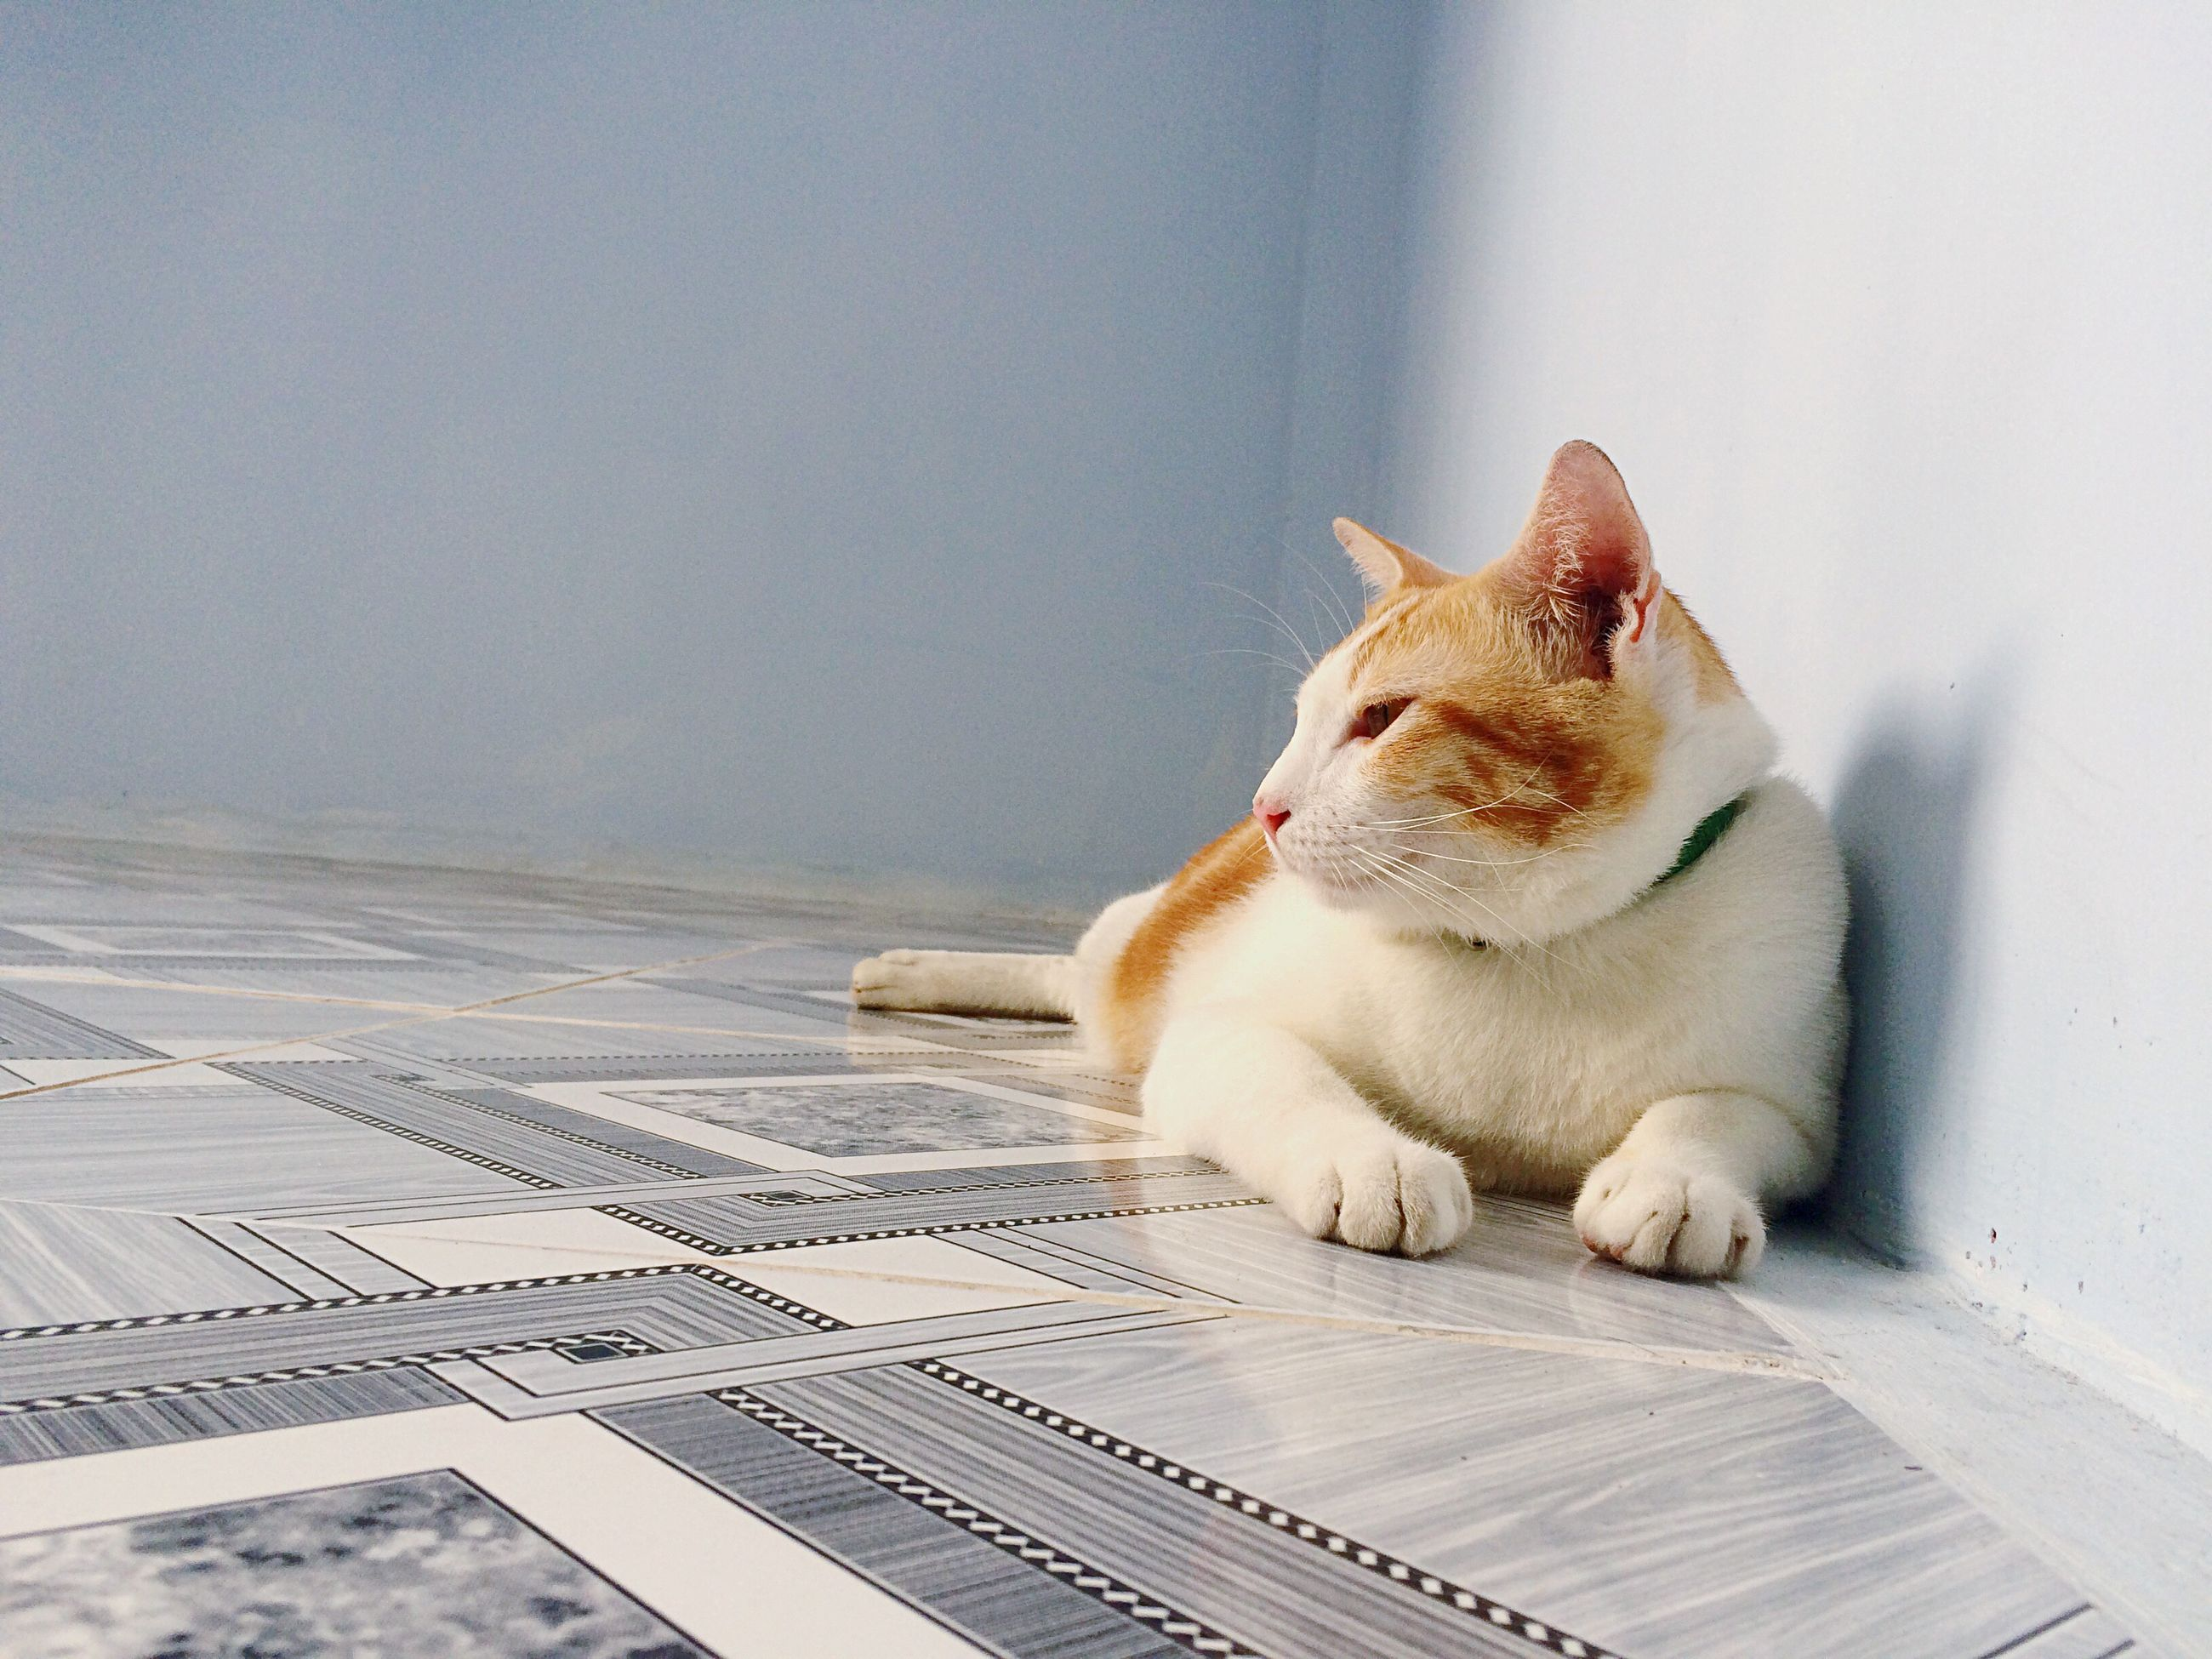 pets, one animal, animal themes, domestic animals, domestic cat, cat, sitting, mammal, looking away, indoors, close-up, watching, white, feline, whisker, curiosity, zoology, day, no people, at home